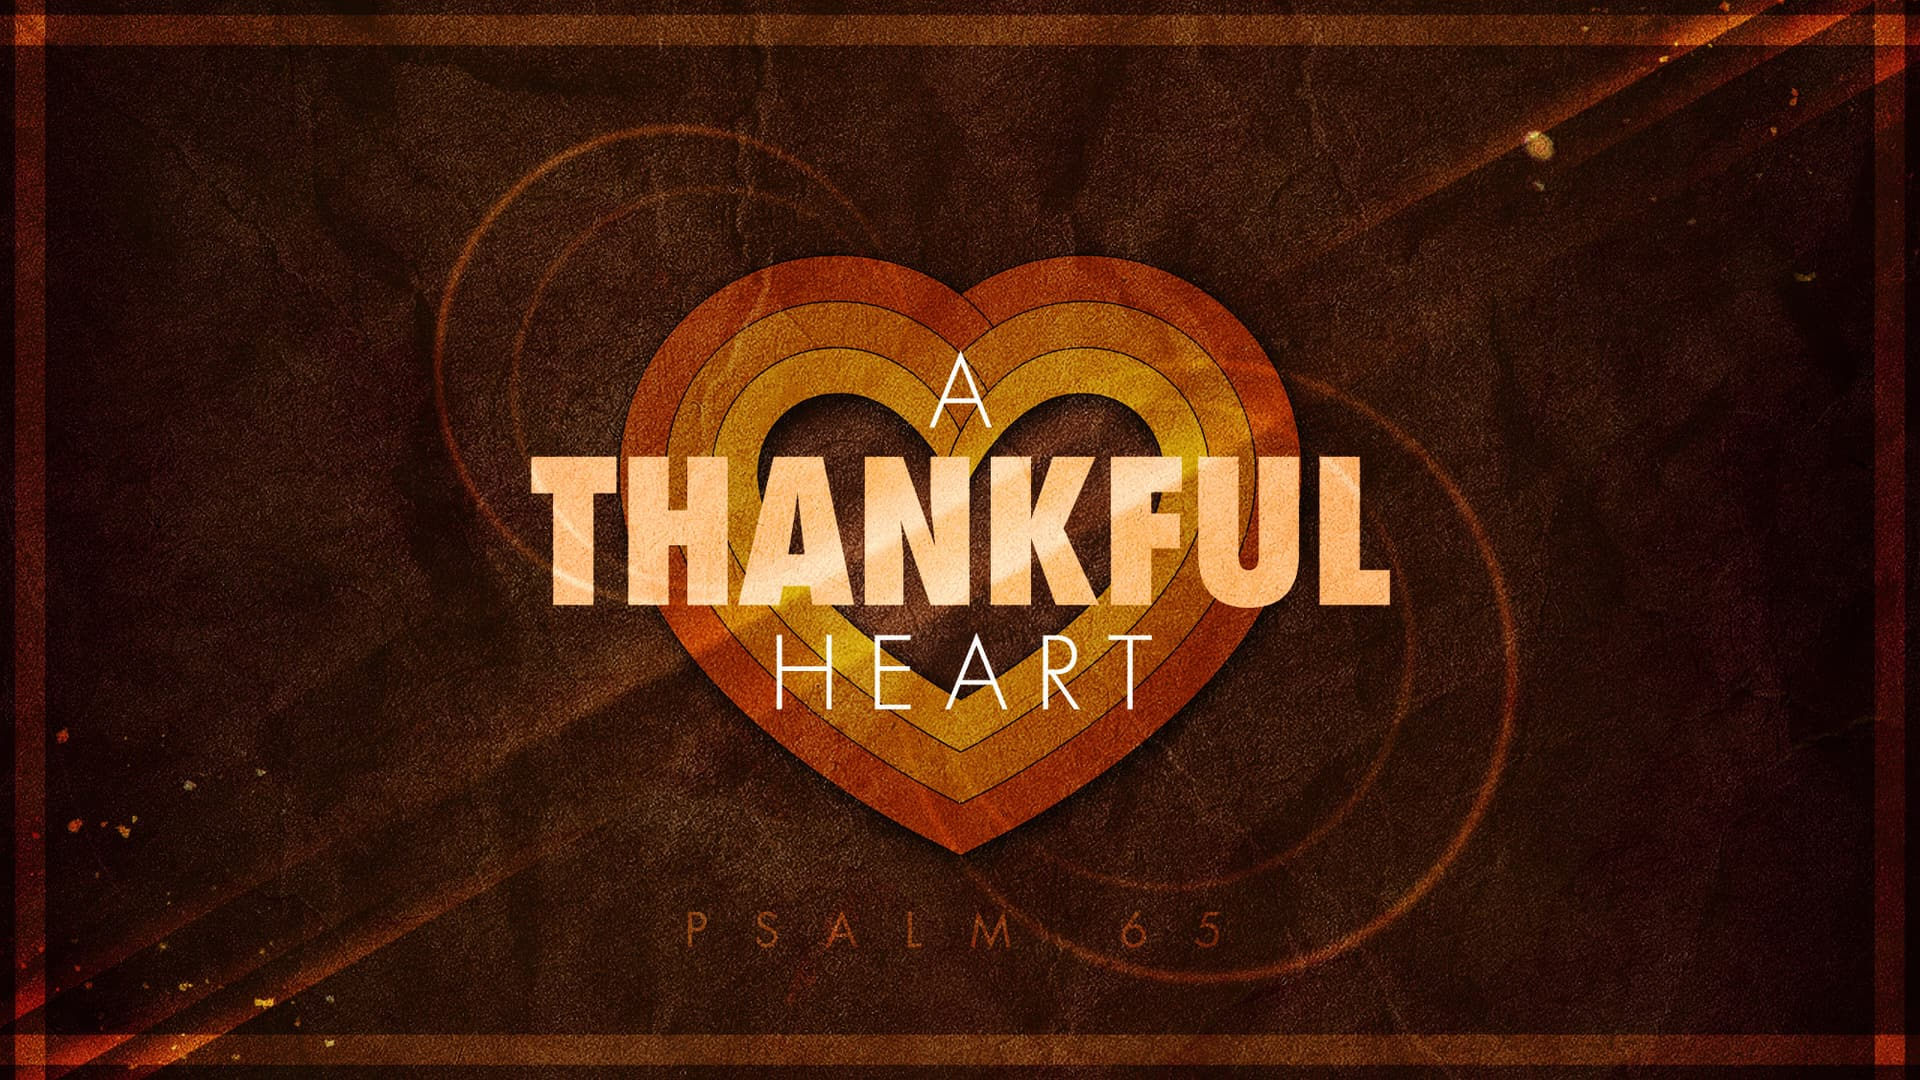 a_thankful_heart-title-1-Wide 16x9